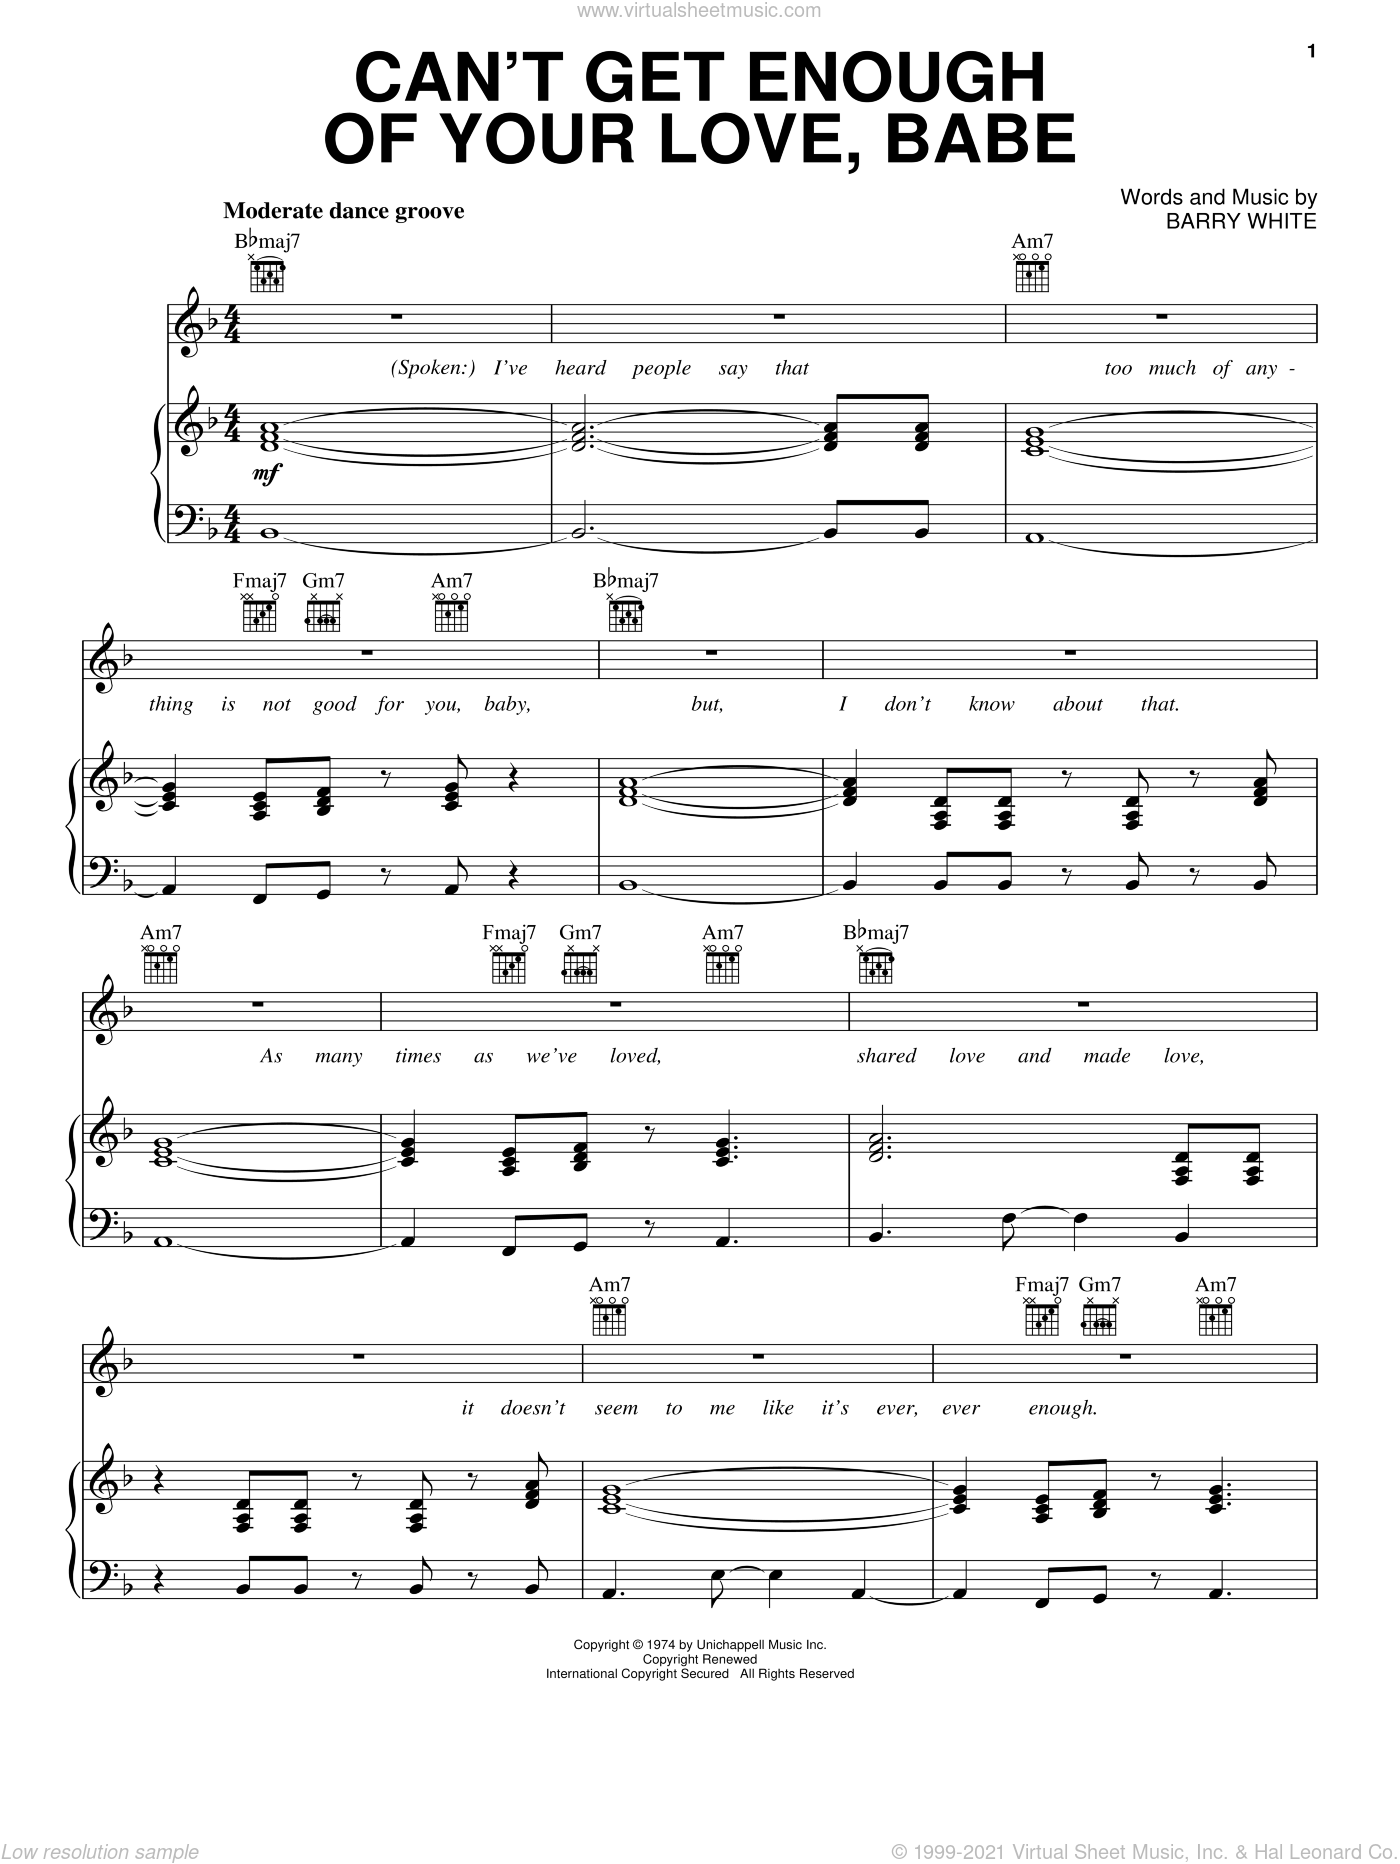 Can't Get Enough Of Your Love, Babe sheet music for voice, piano or guitar by Barry White. Score Image Preview.